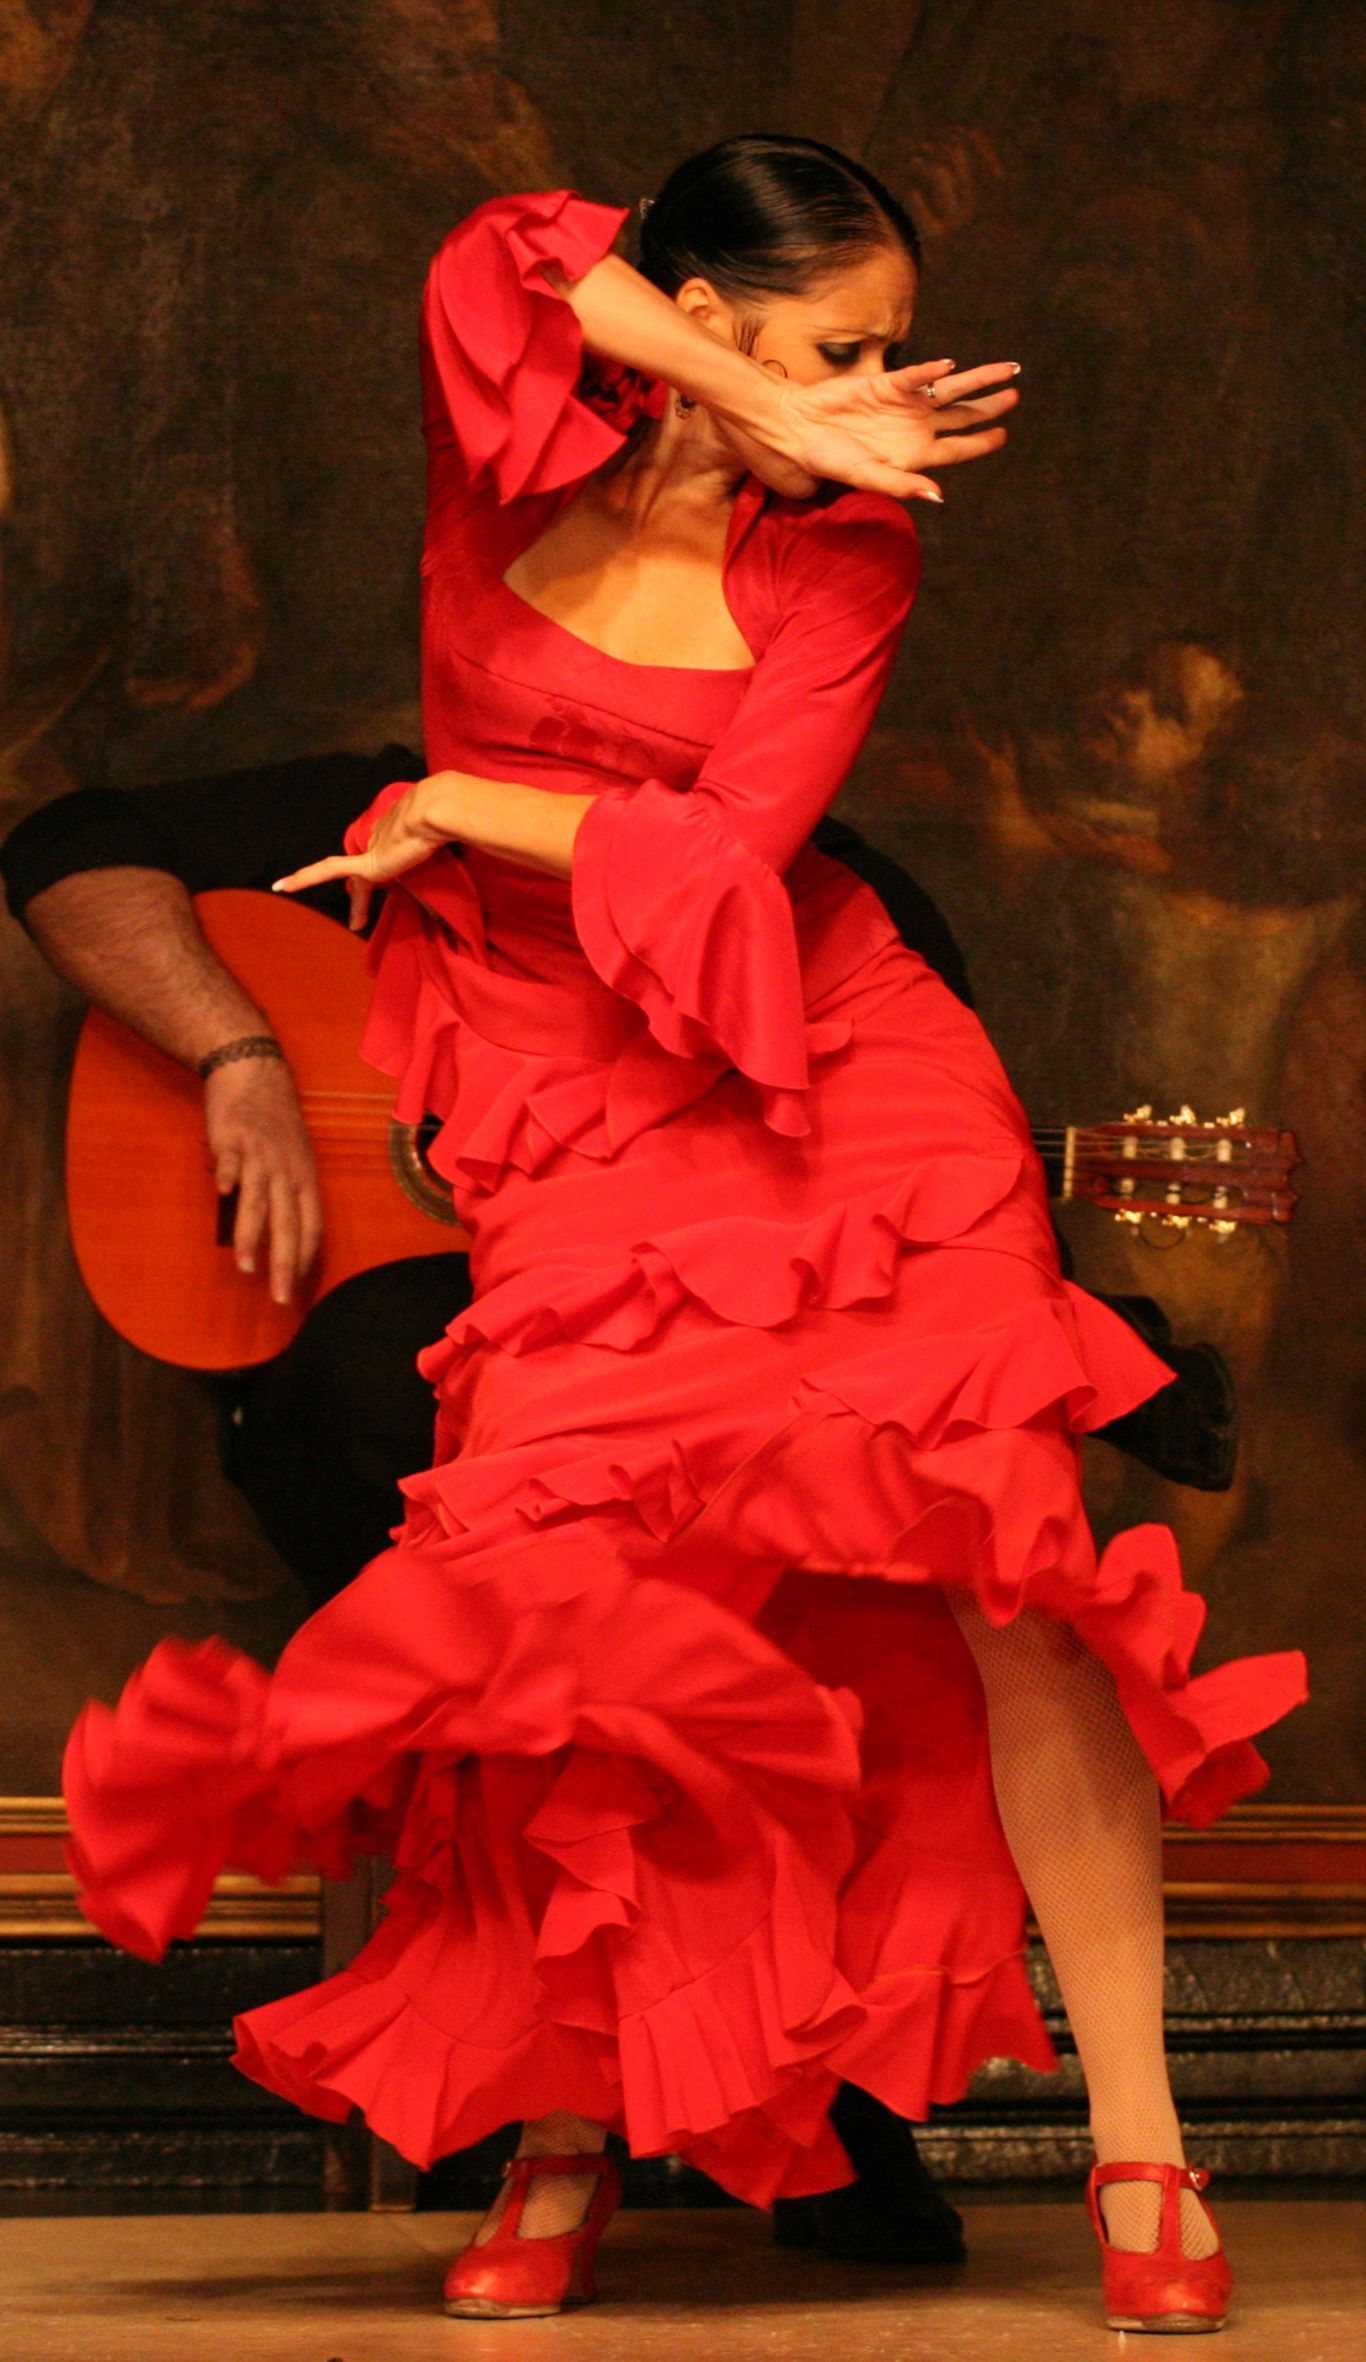 Flamenco Arte Y Ole Ole The Little Red Dress Of Flamenco At Tablao Cordobes Barcelona